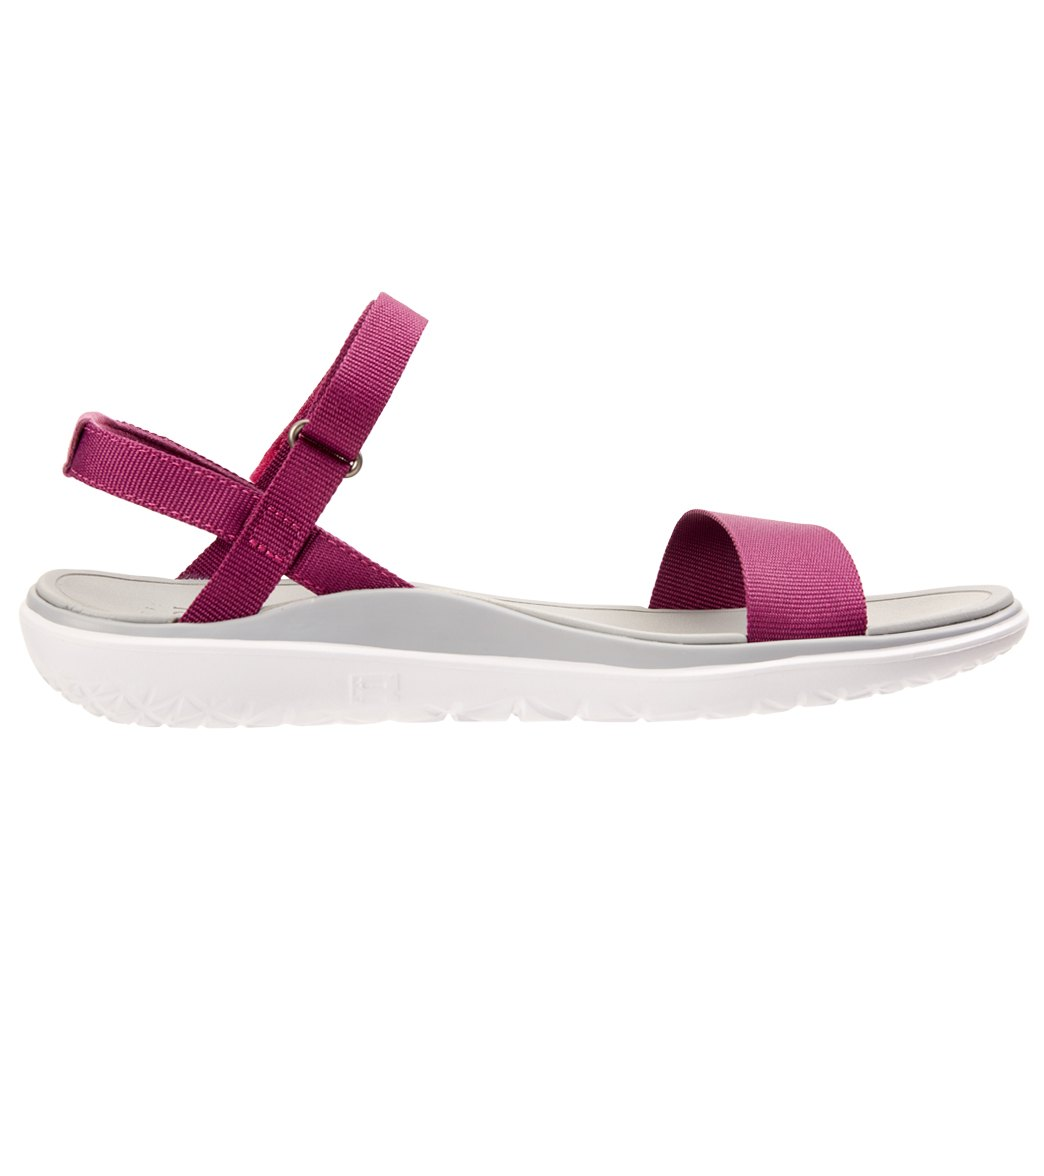 9074a523f Teva Women s Terra Float Nova Sandal at SwimOutlet.com - Free Shipping